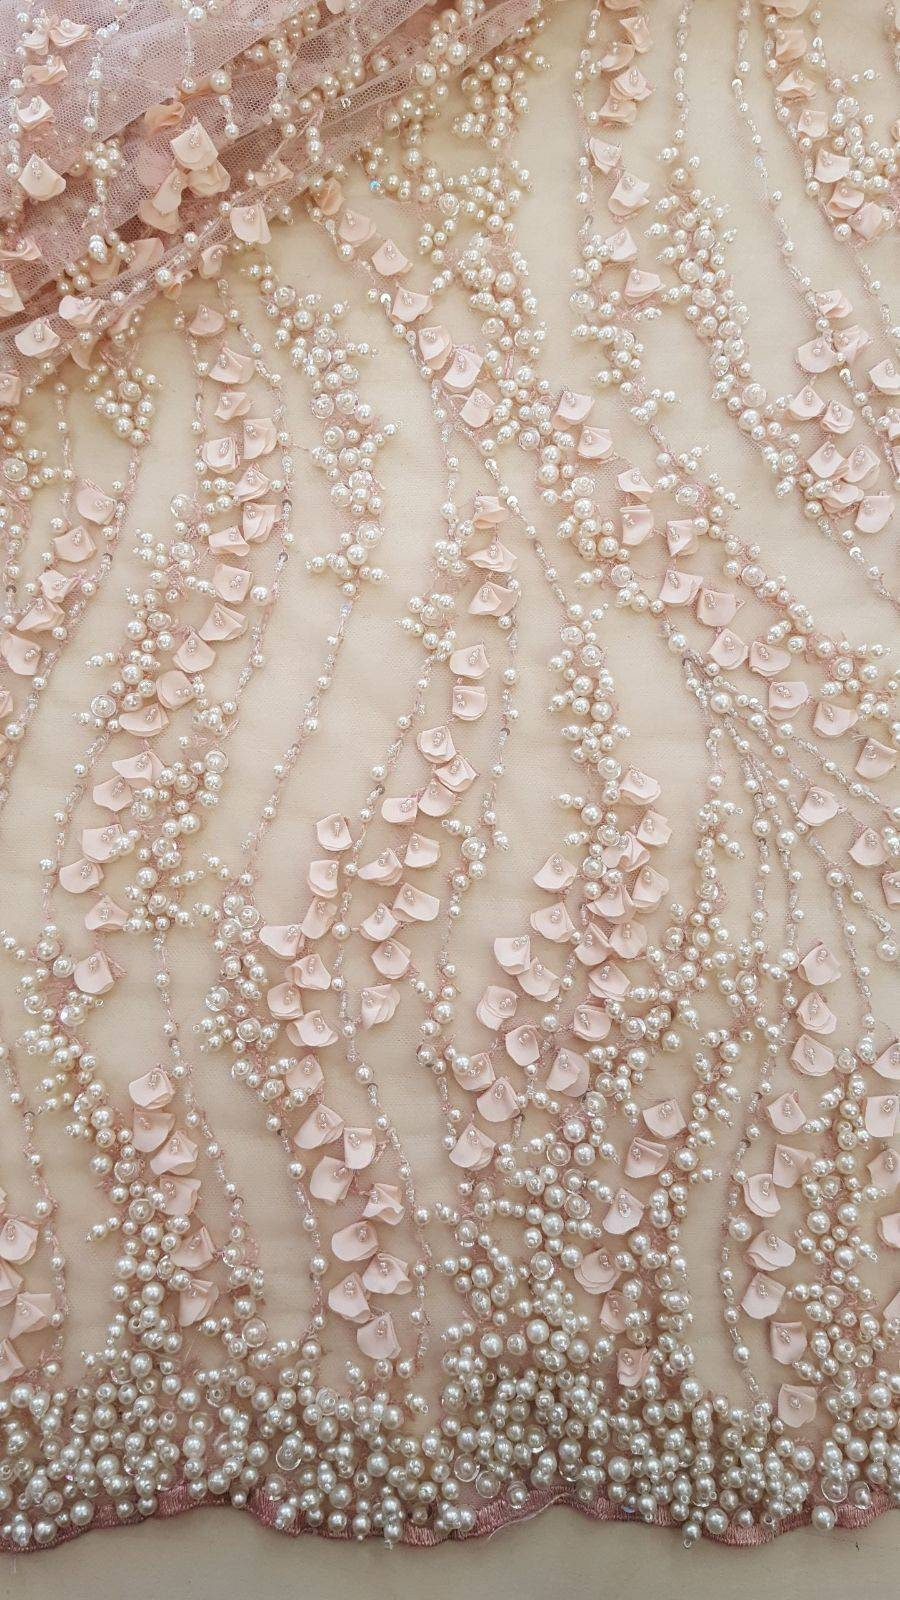 3D lace fabric Salmon pink flowers lace fabric 3D French